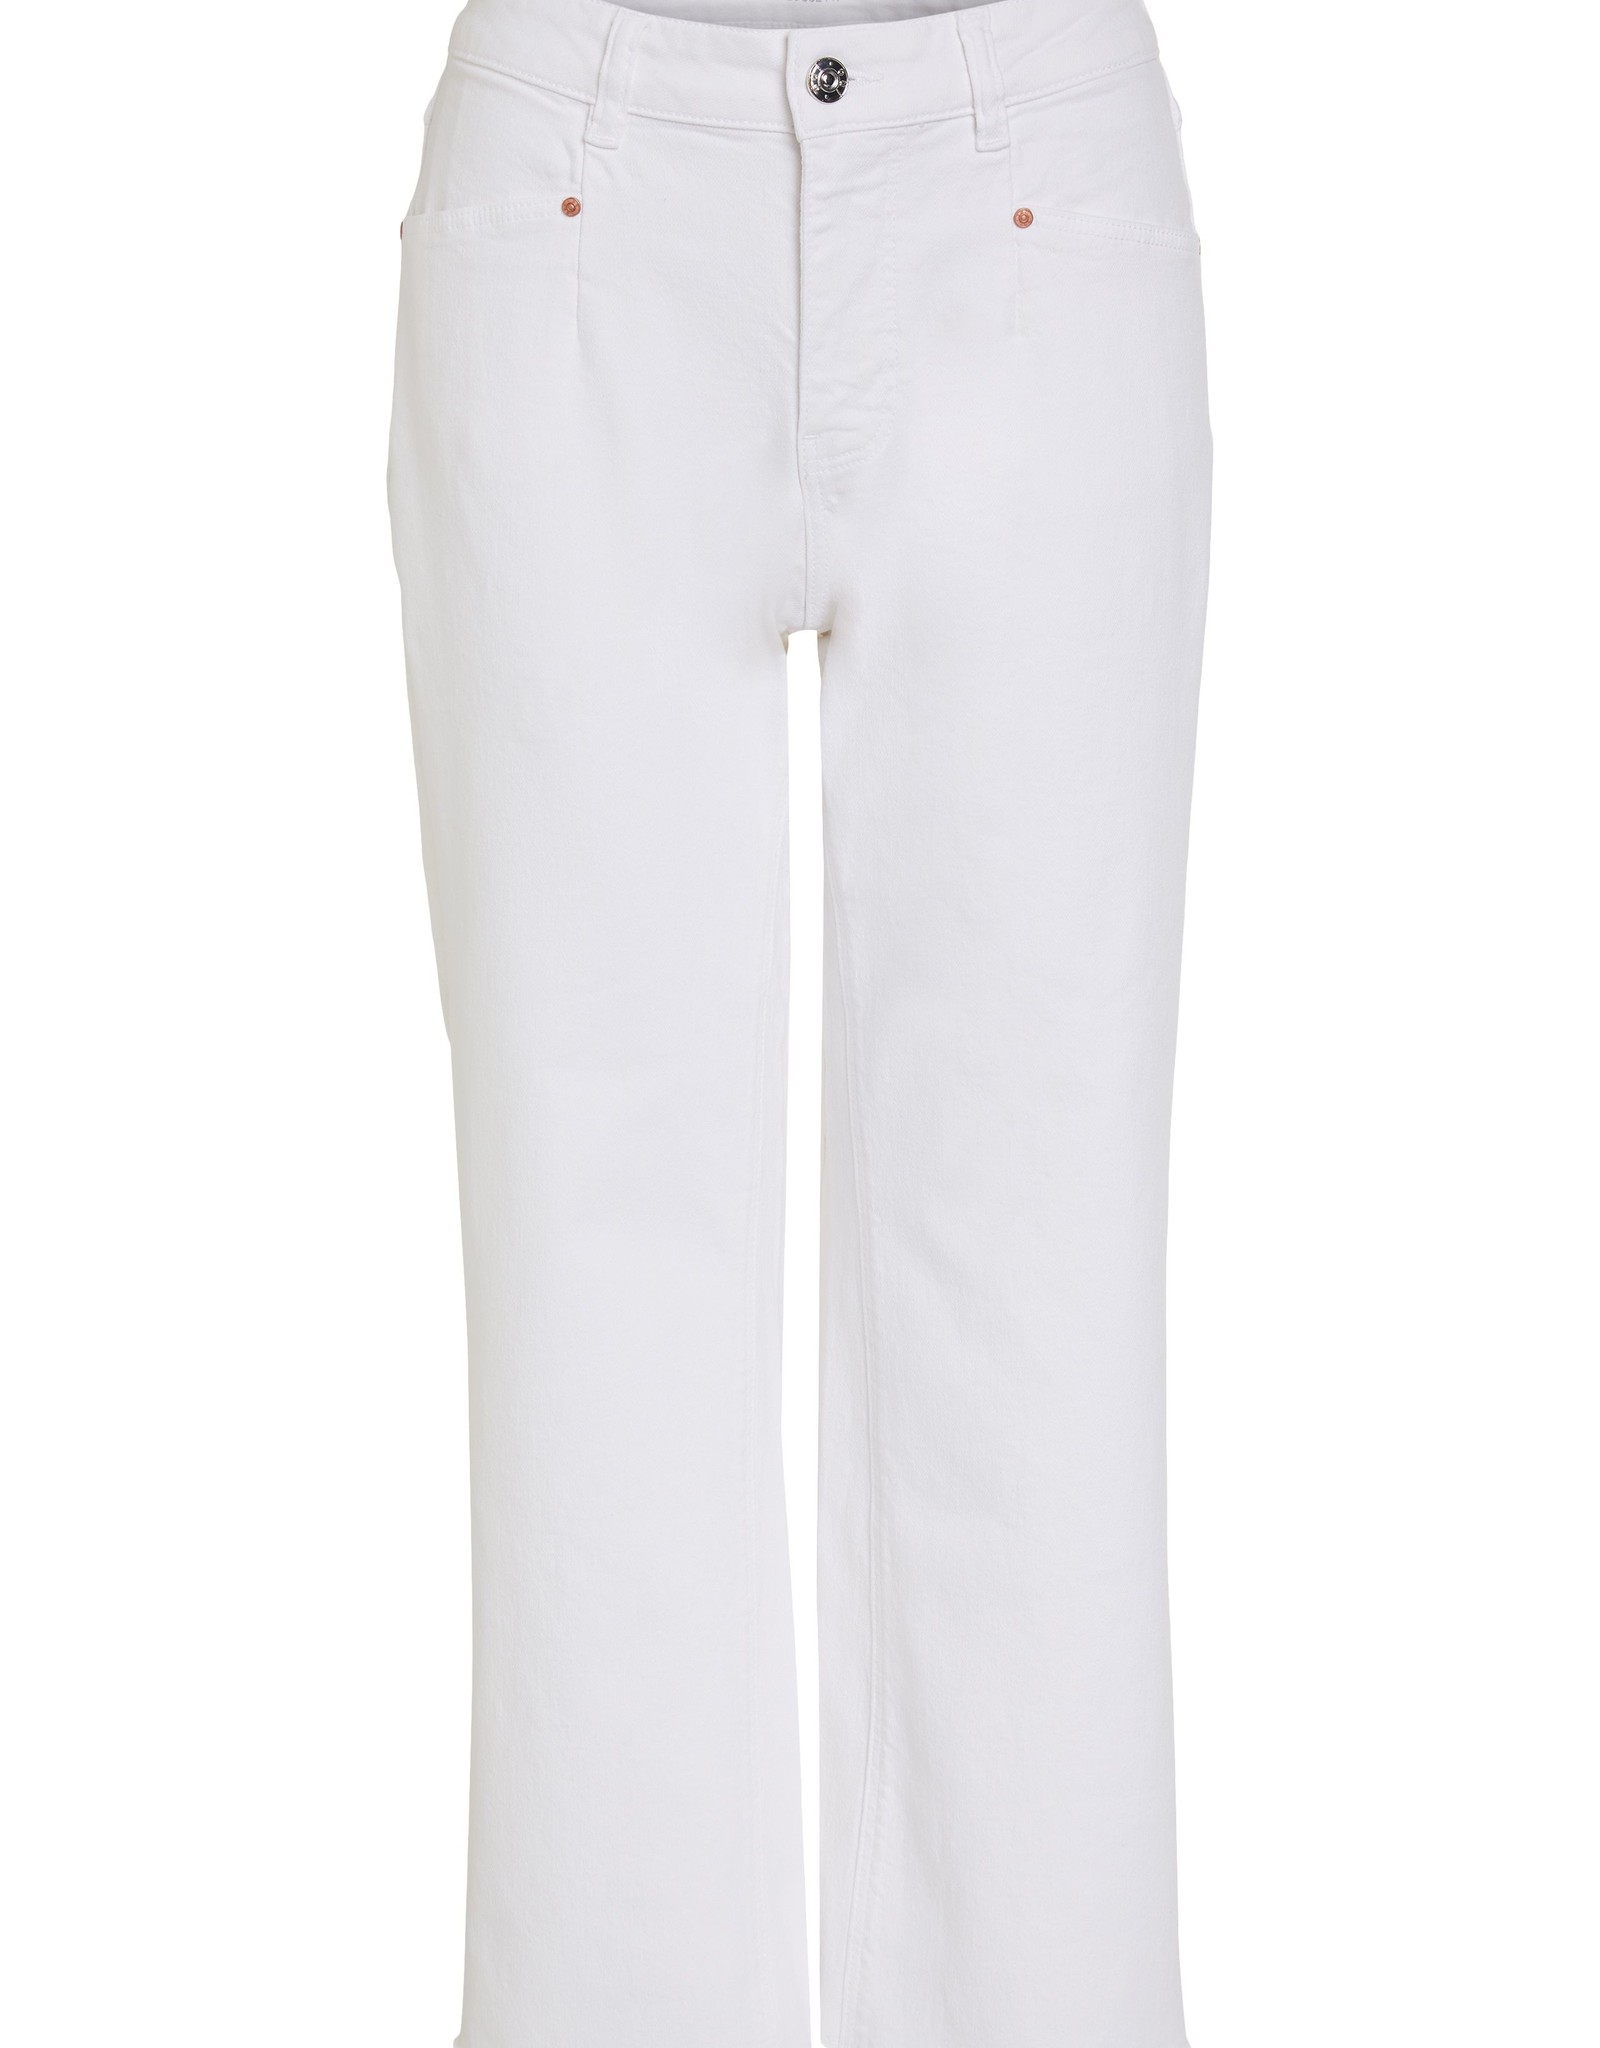 Ouí 72490 Jeans Jambes larges